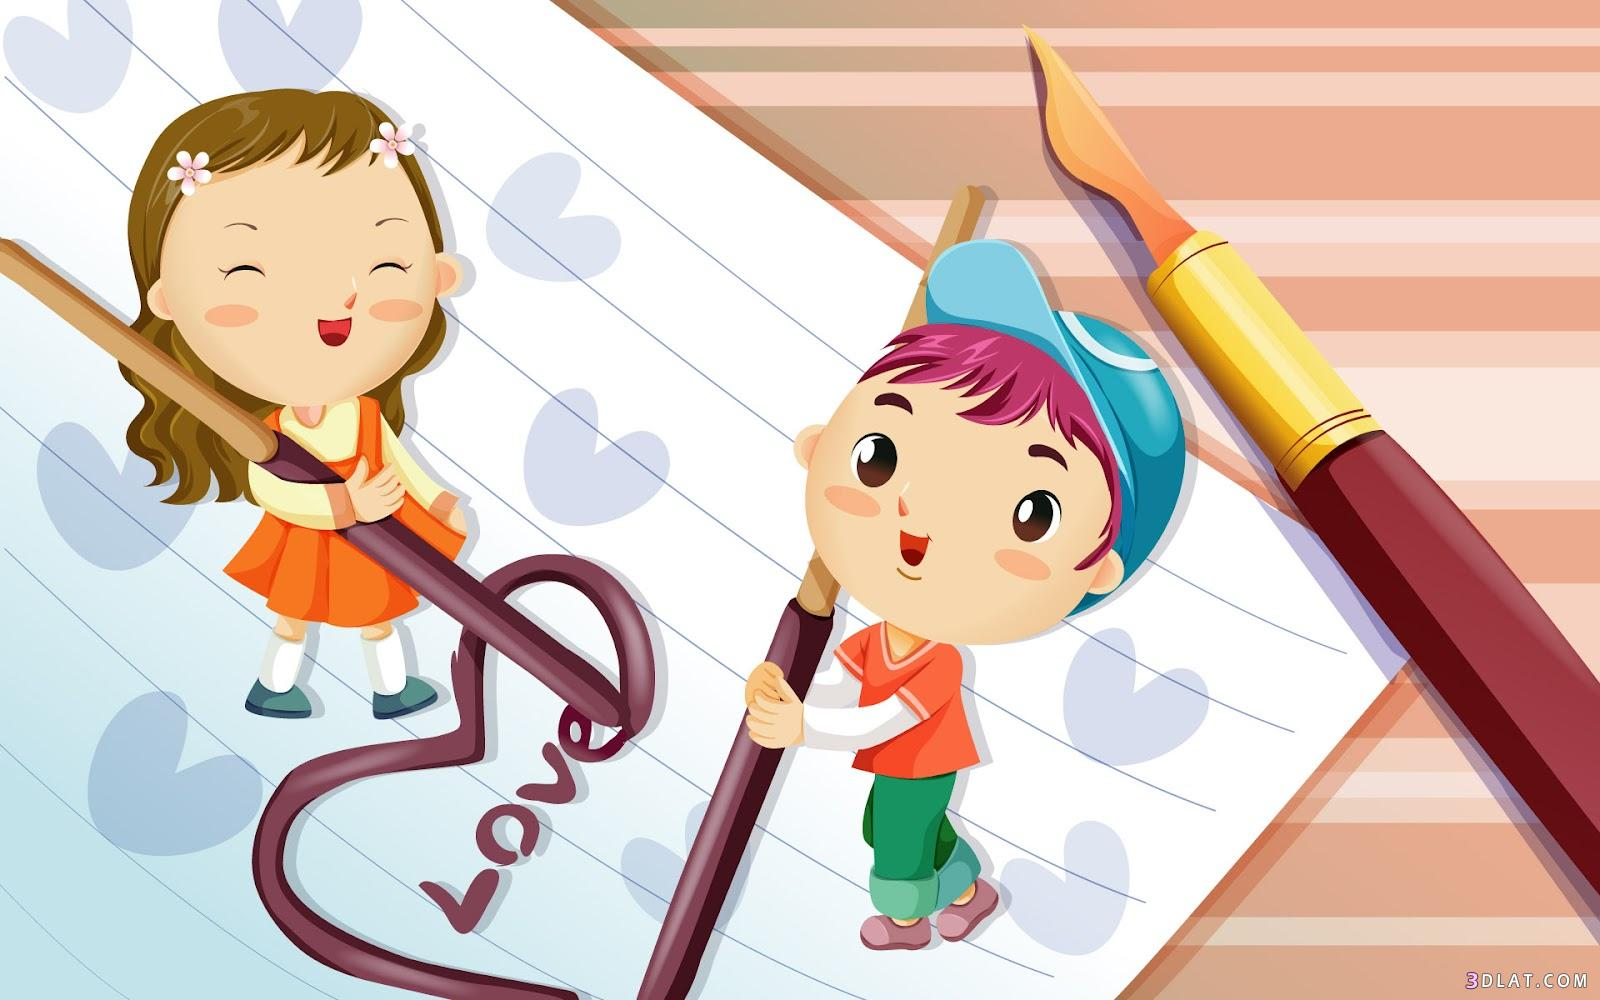 Hd Cute Love Wallpapers For Mobile: صور حب